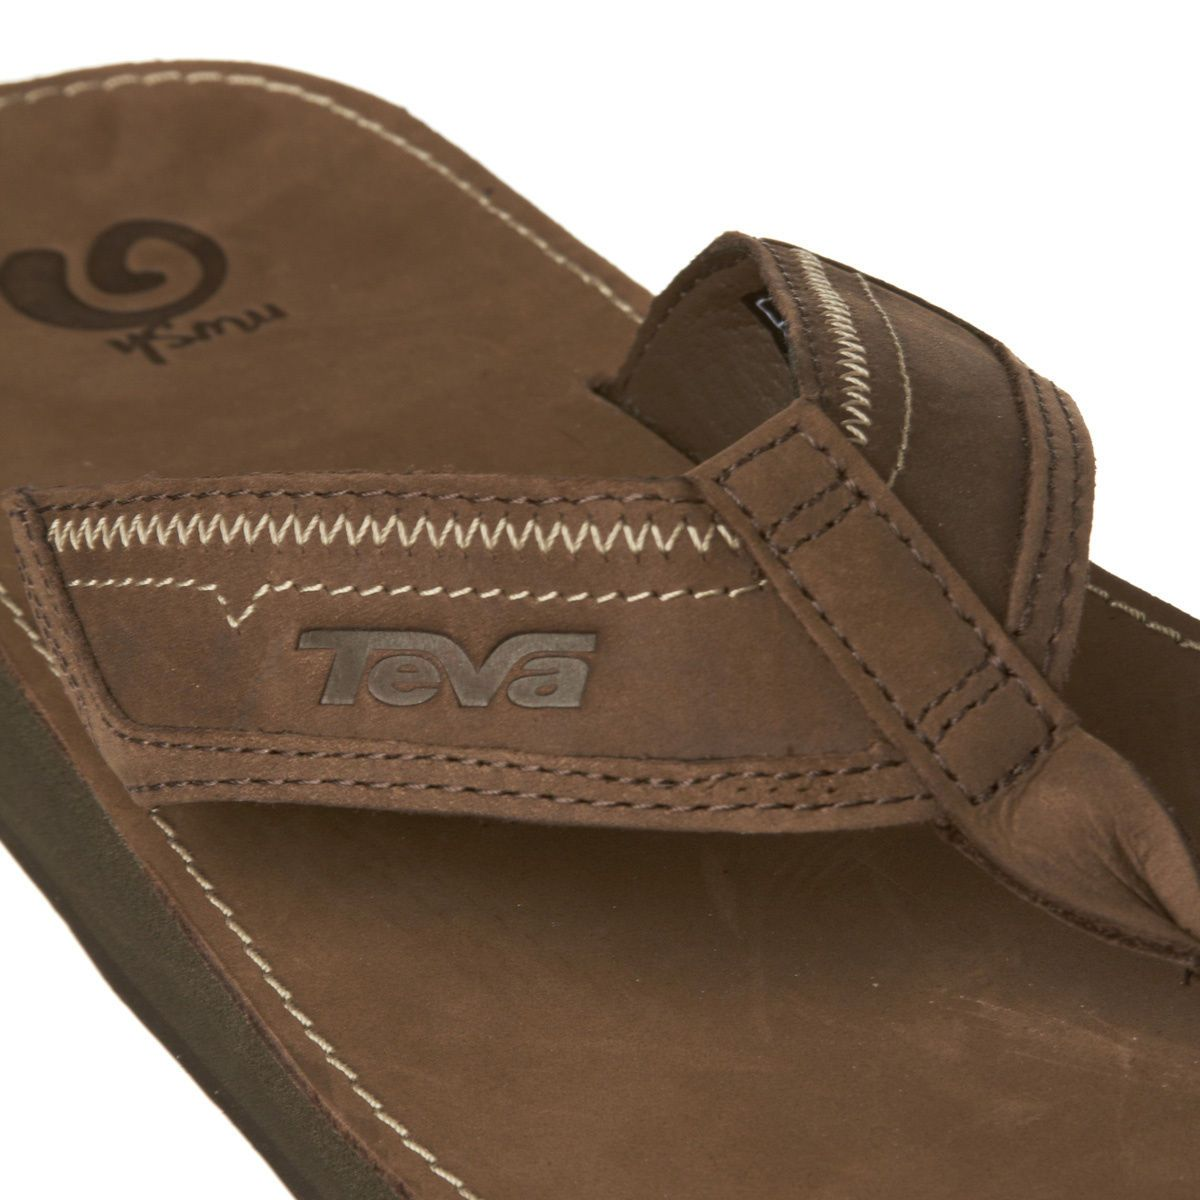 6210ab2dfe93 Teva Benson M s Leather Flip Flops - Brown